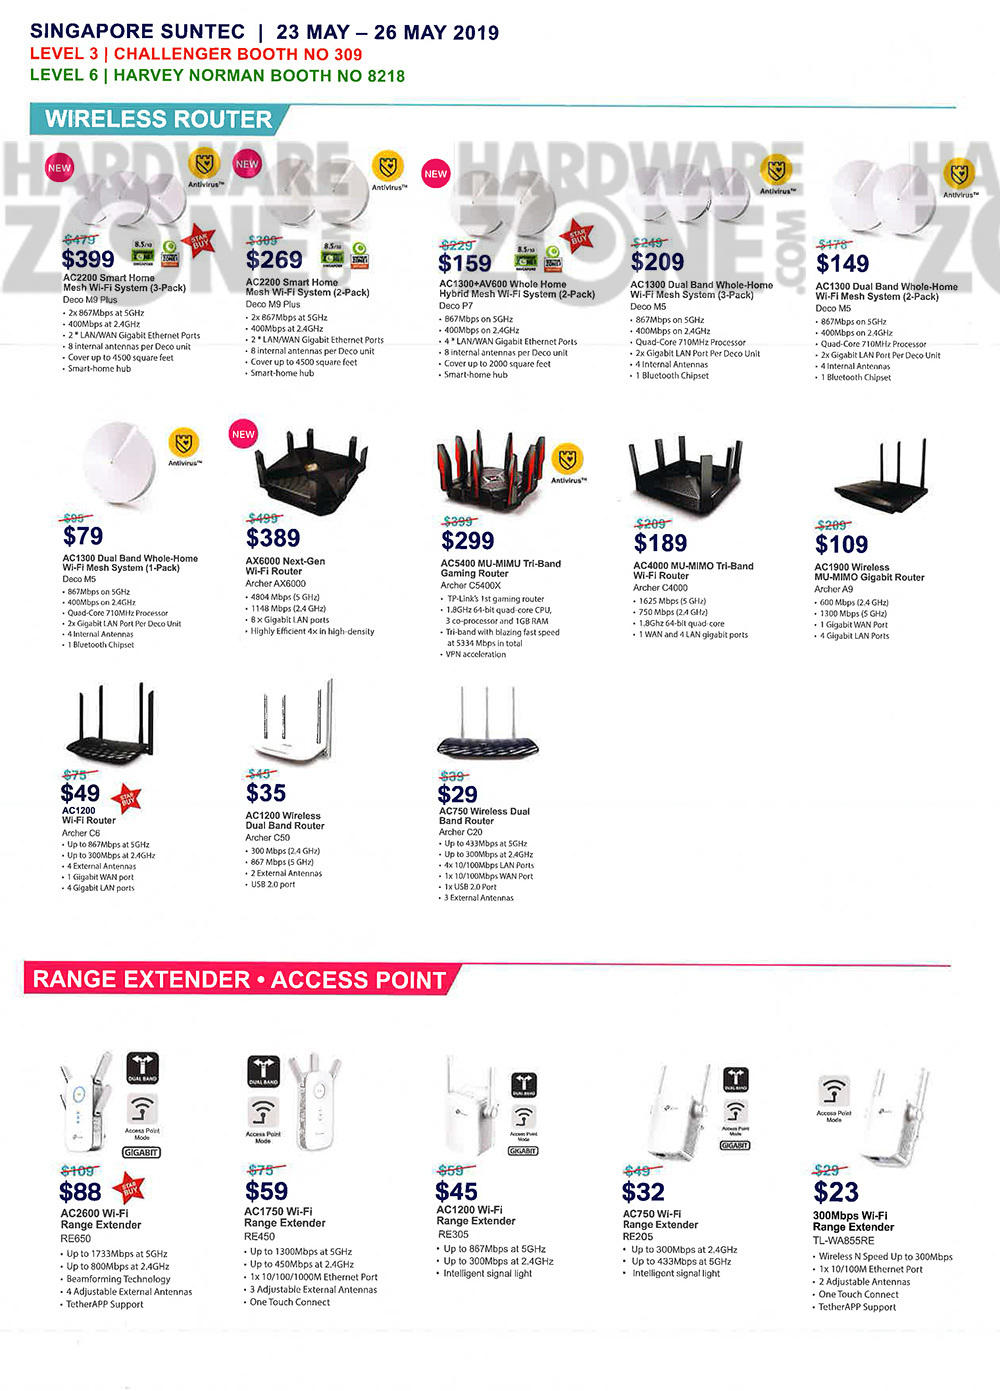 TP-Link - pg 02 Brochures from CEE 2019 on Tech Show Portal